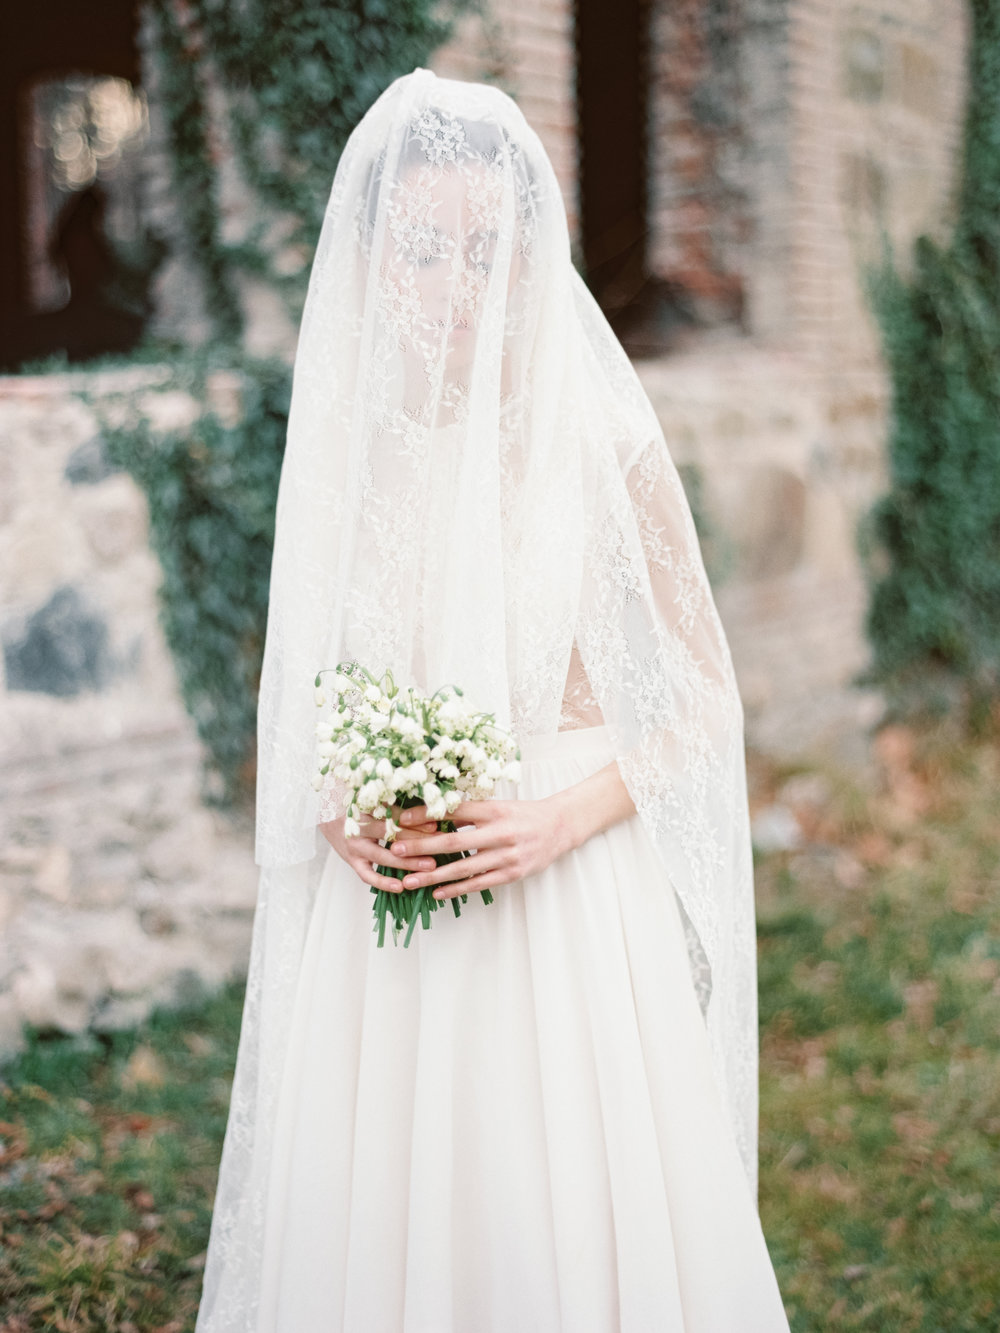 TamaraGigolaphotography,Cathytelle,royalweddingdress,kakheti-0042-4.JPG